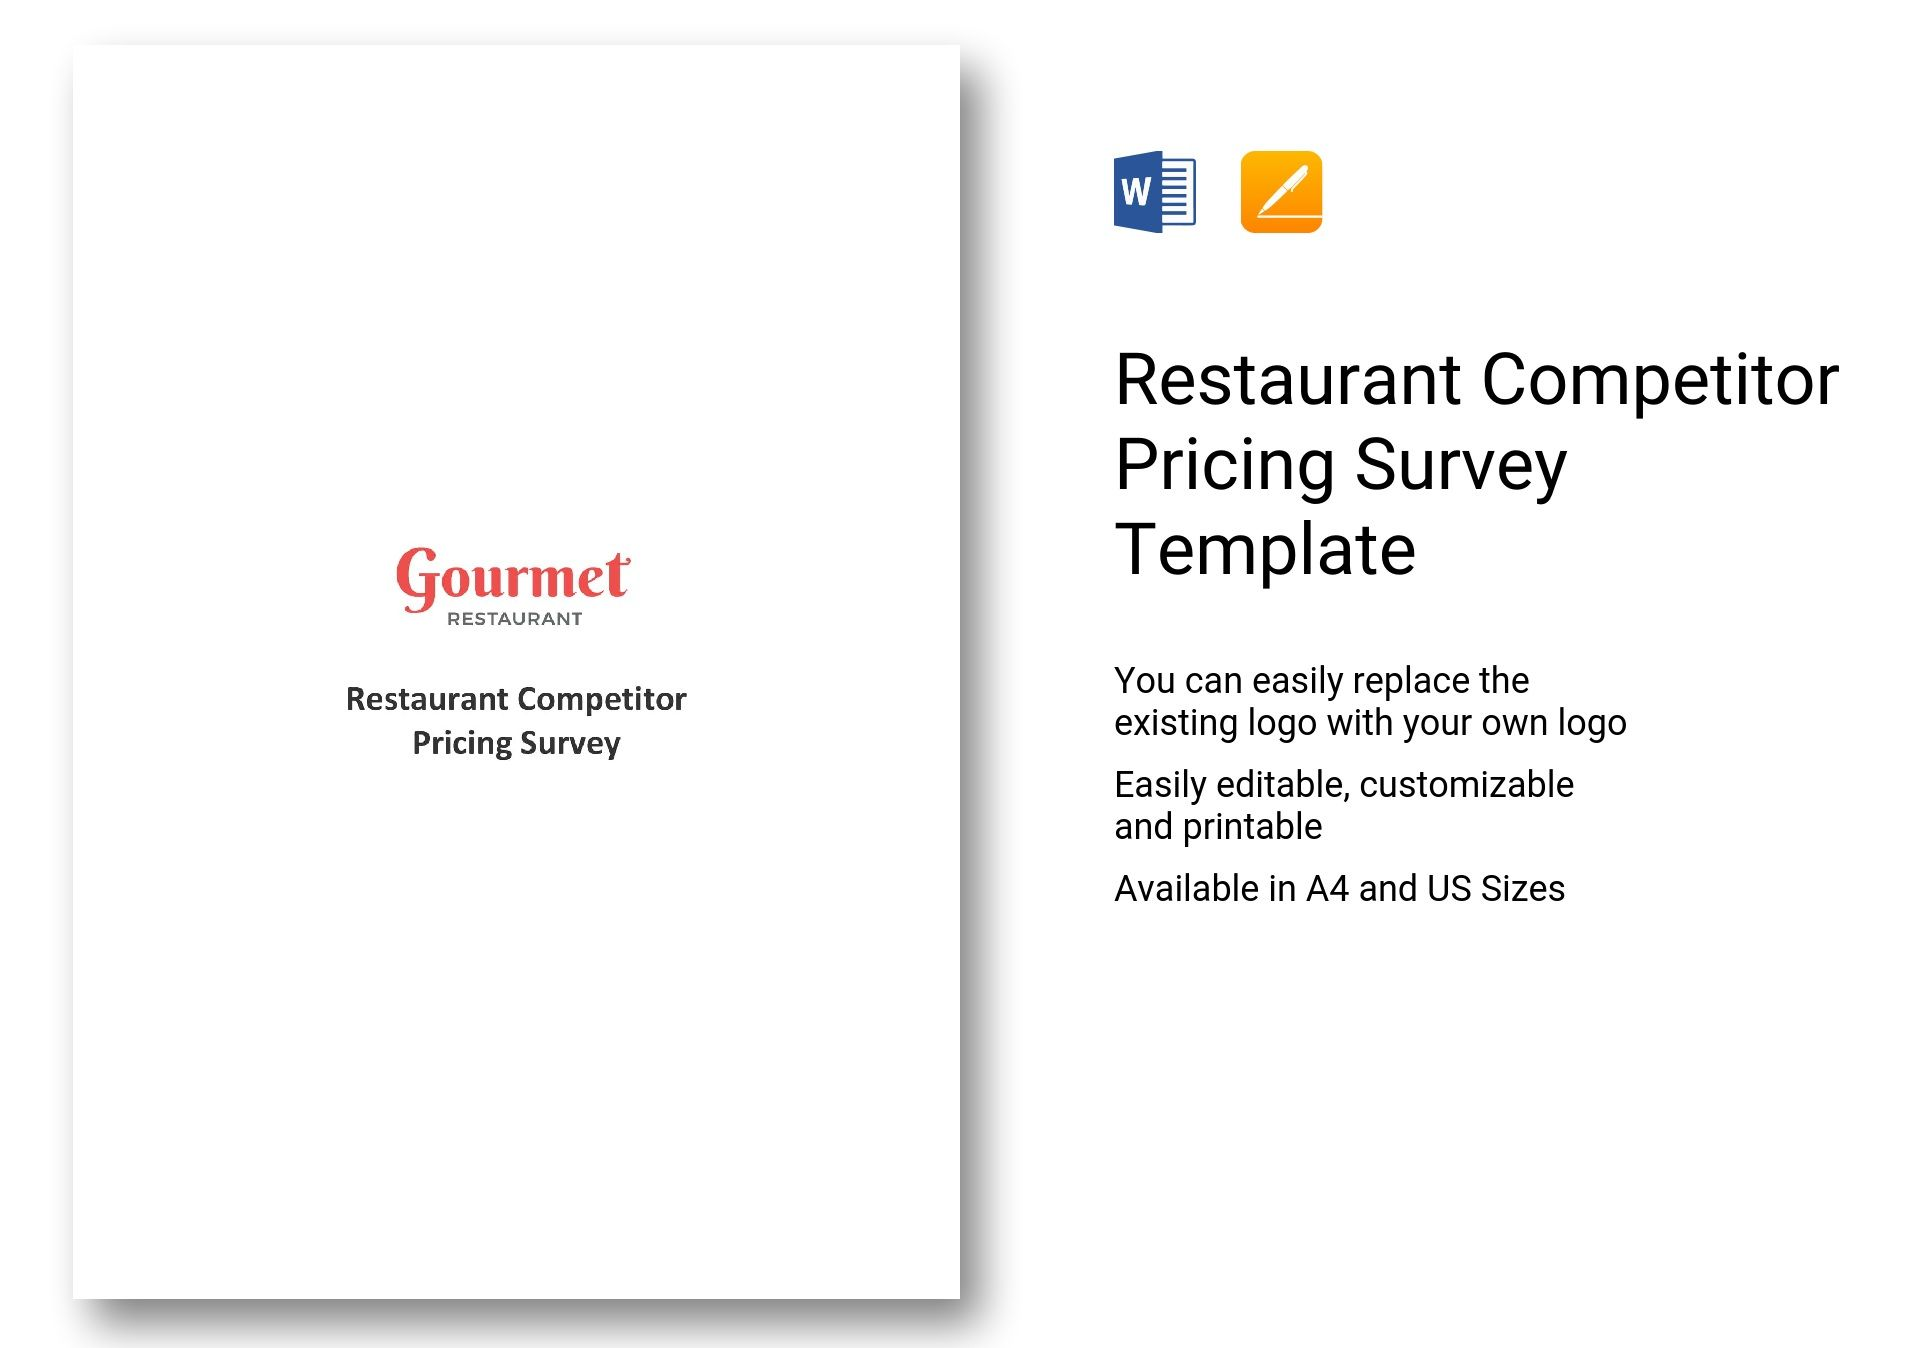 Restaurant Competitor Pricing Survey